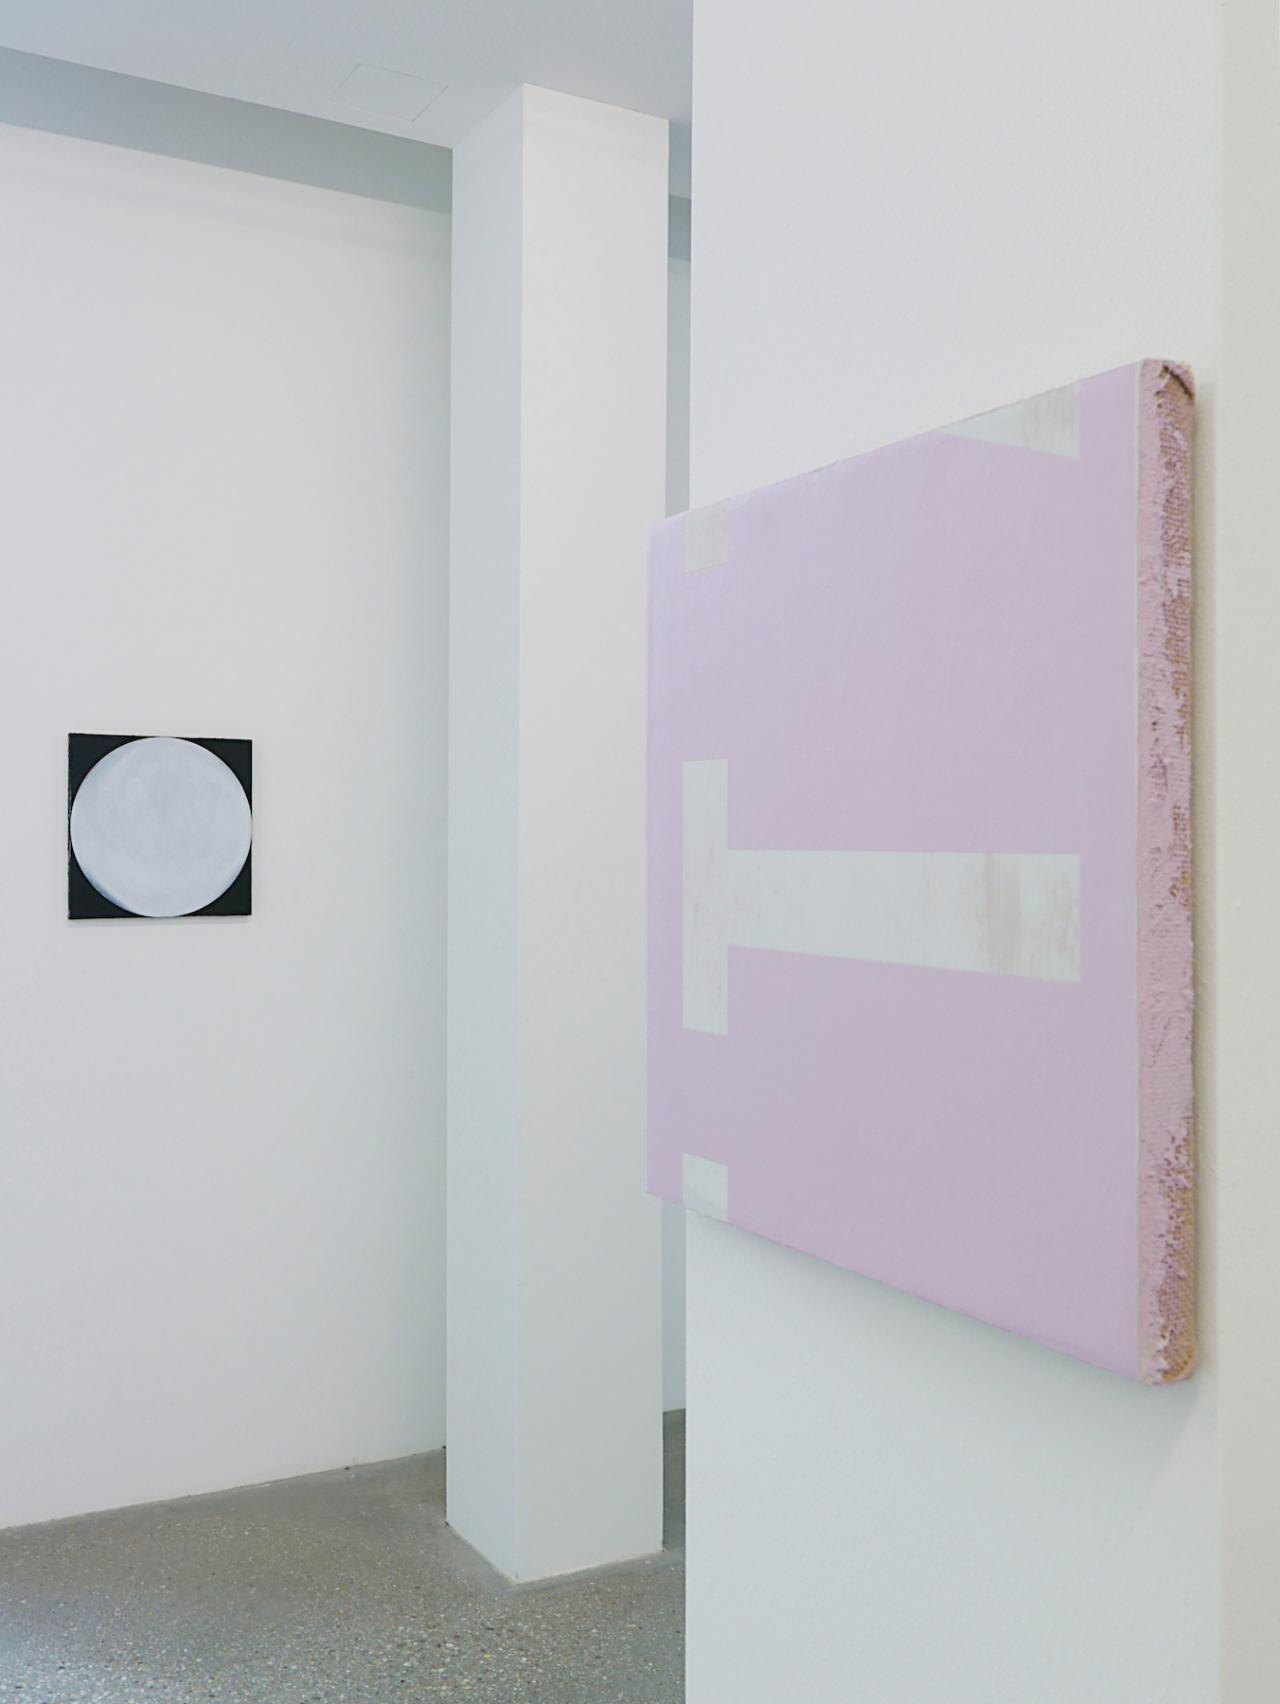 """""""Nicolas Jasmin and Other Works"""" Exhibition view at Belvedere 21 Left: O.T. (FULL #5) , 2018 Right: O.T. #38 (VTTZ) GEHEIMSPRACHE ROSA , 2018 Courtesy the artist and Croy Nielsen, Vienna"""